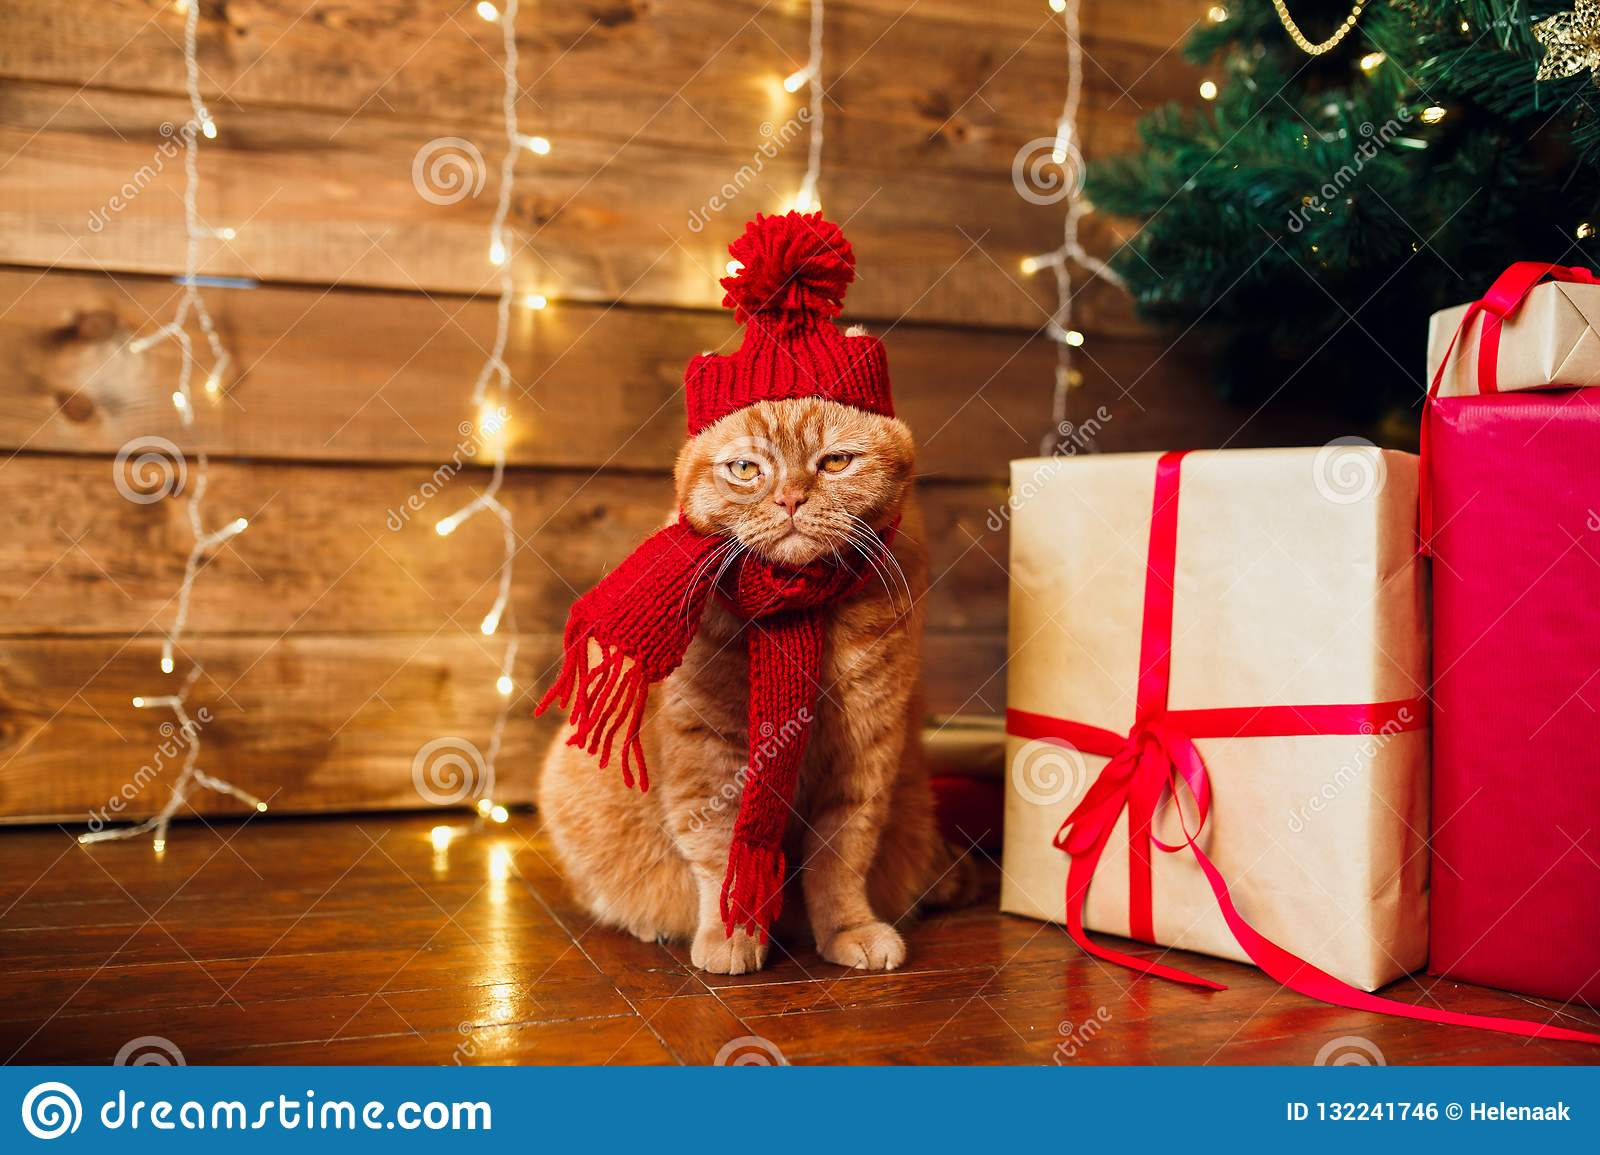 Red british cat in knitted hat and scarf sitting under Christmas tree and present boxes.